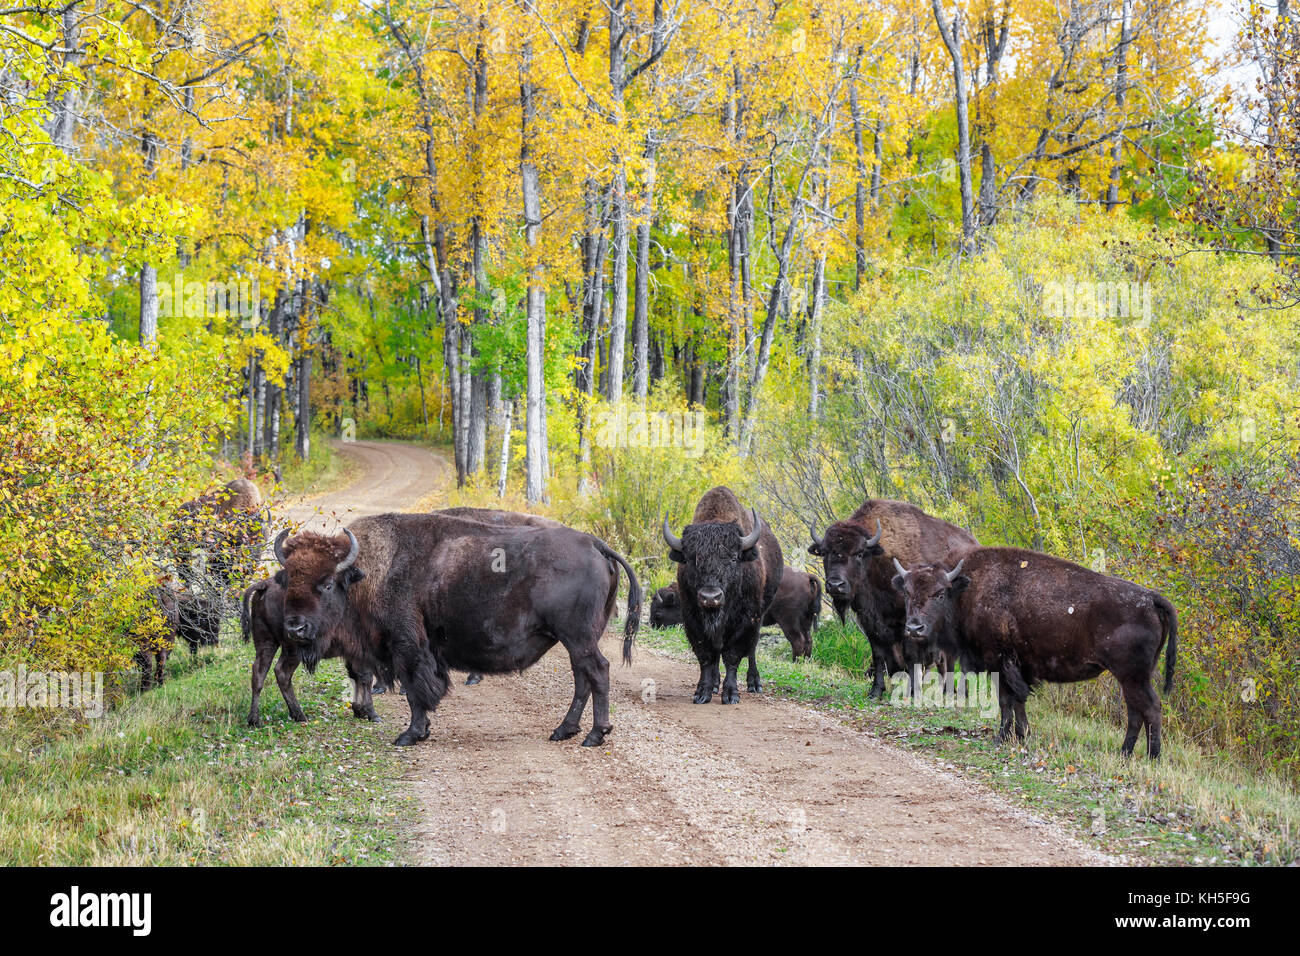 Plains Bison, (Bison bison bison) or American Buffalo, Riding Mountain National Park, Manitoba, Canada. Stock Photo